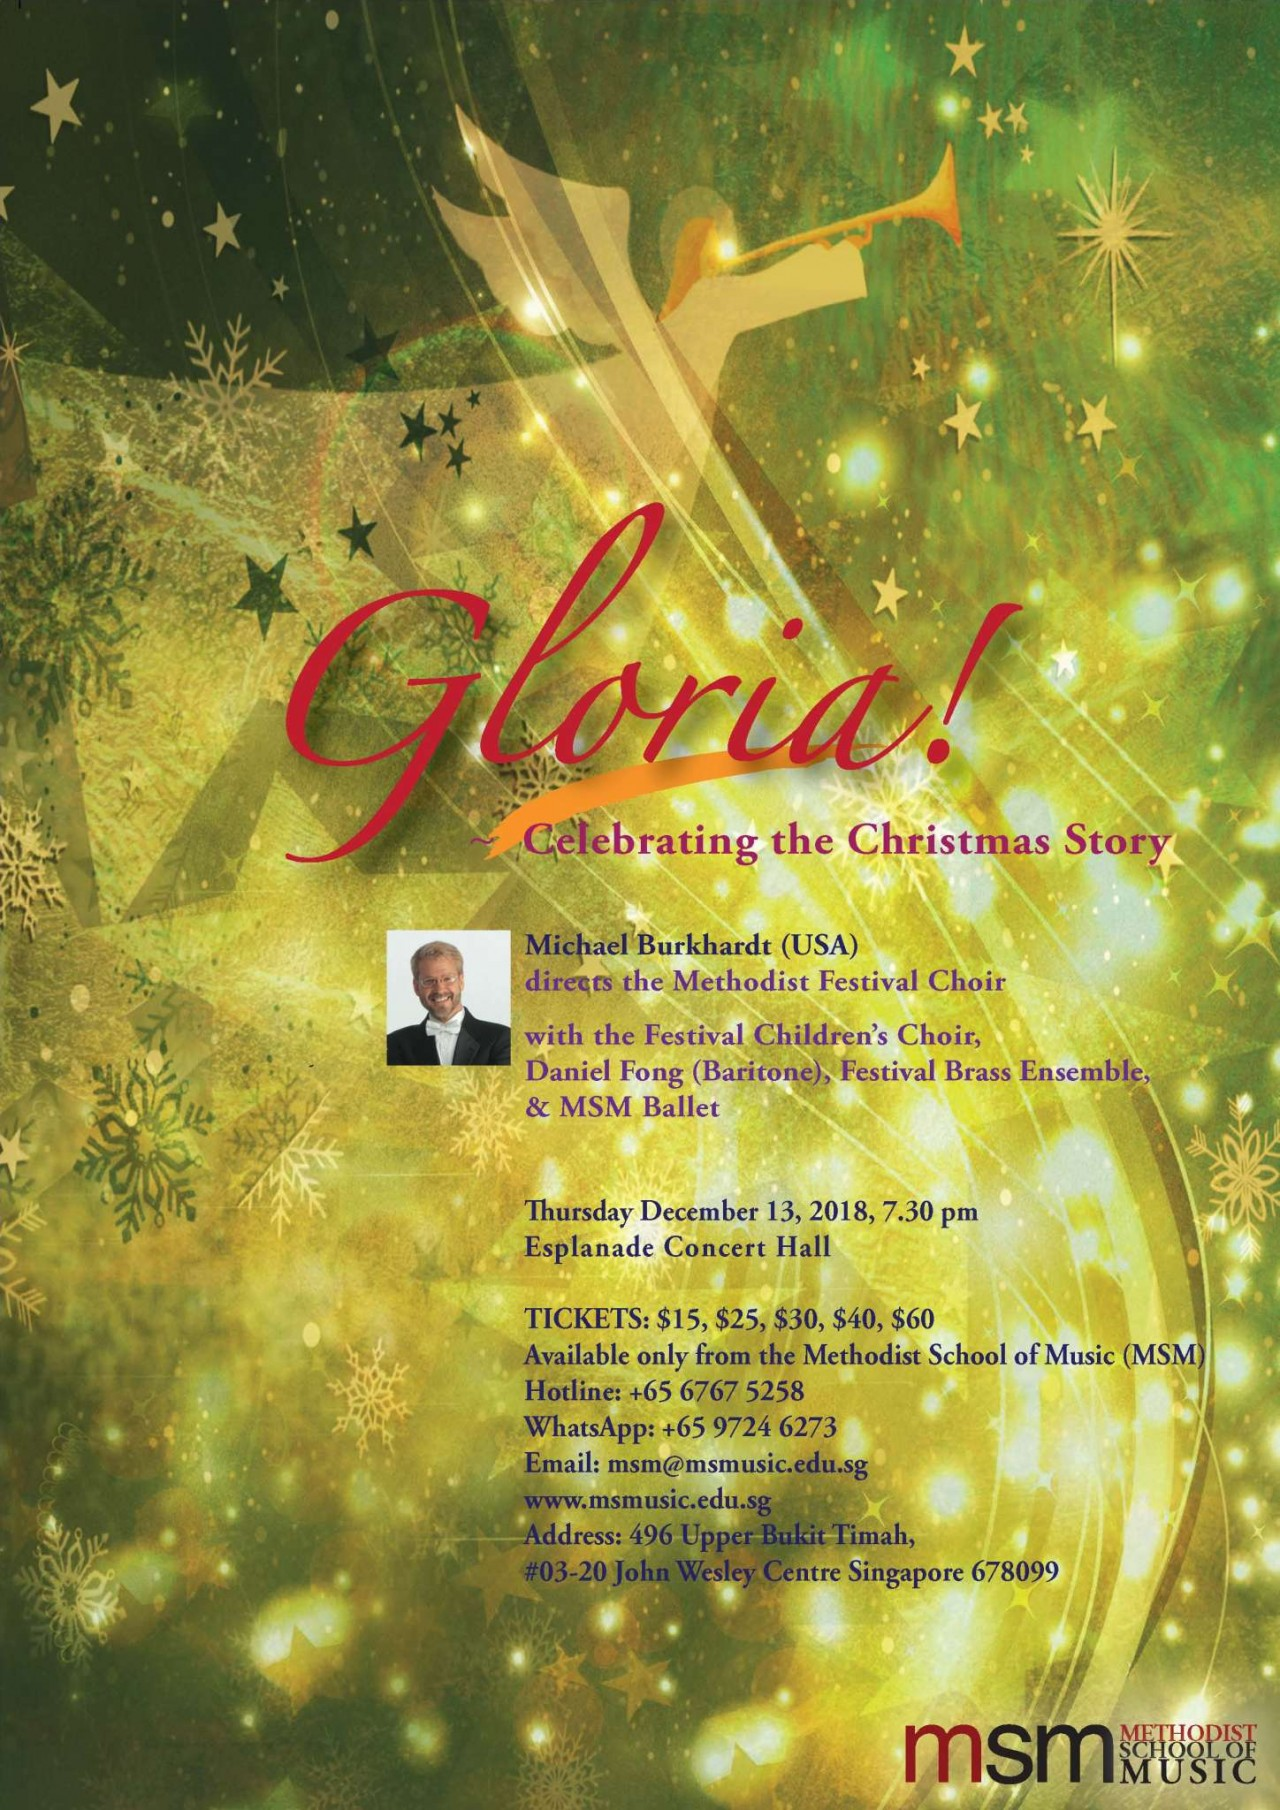 GLORIA! Celebrating the Christmas Story (MSM)